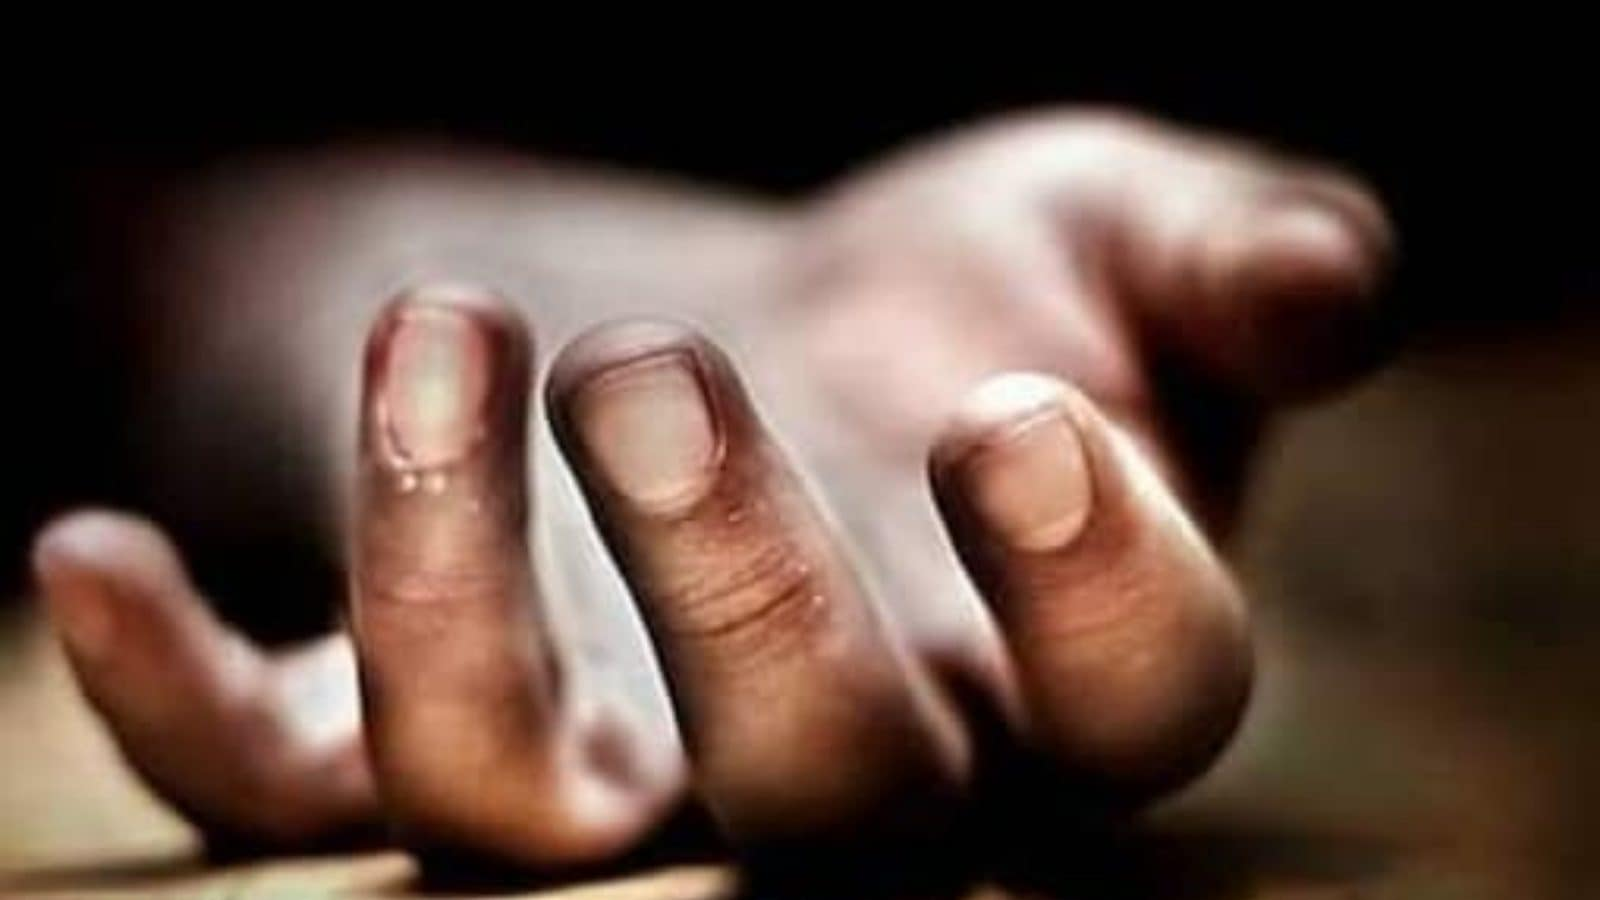 Chattisgarh's Ex-minister Bhatia found dead at home; suicide suspected